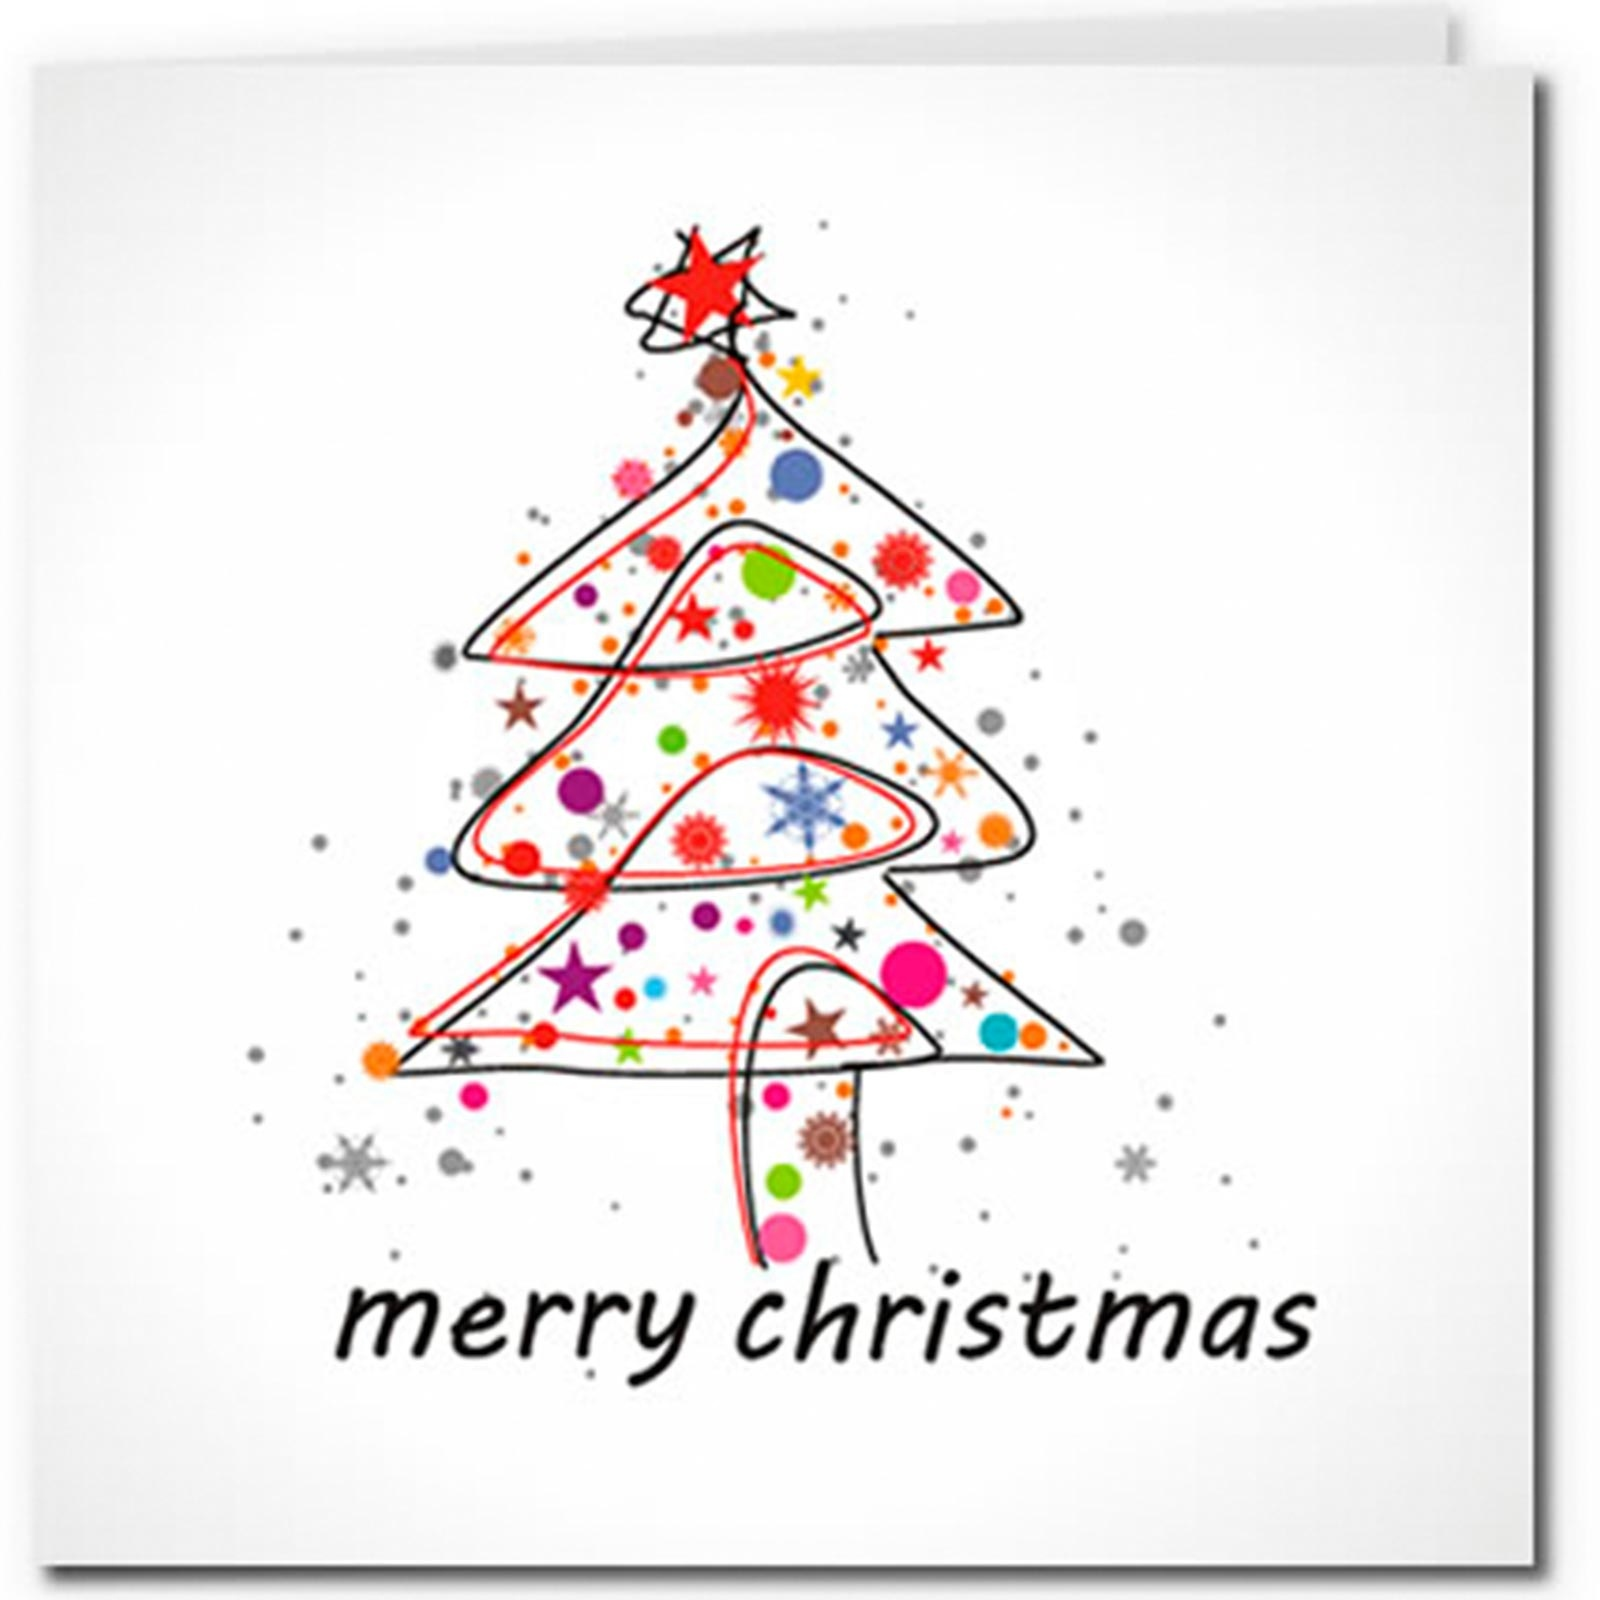 Free Christmas Cards To Print Out And Send This Year | Reader's Digest - Free Printable Photo Christmas Cards